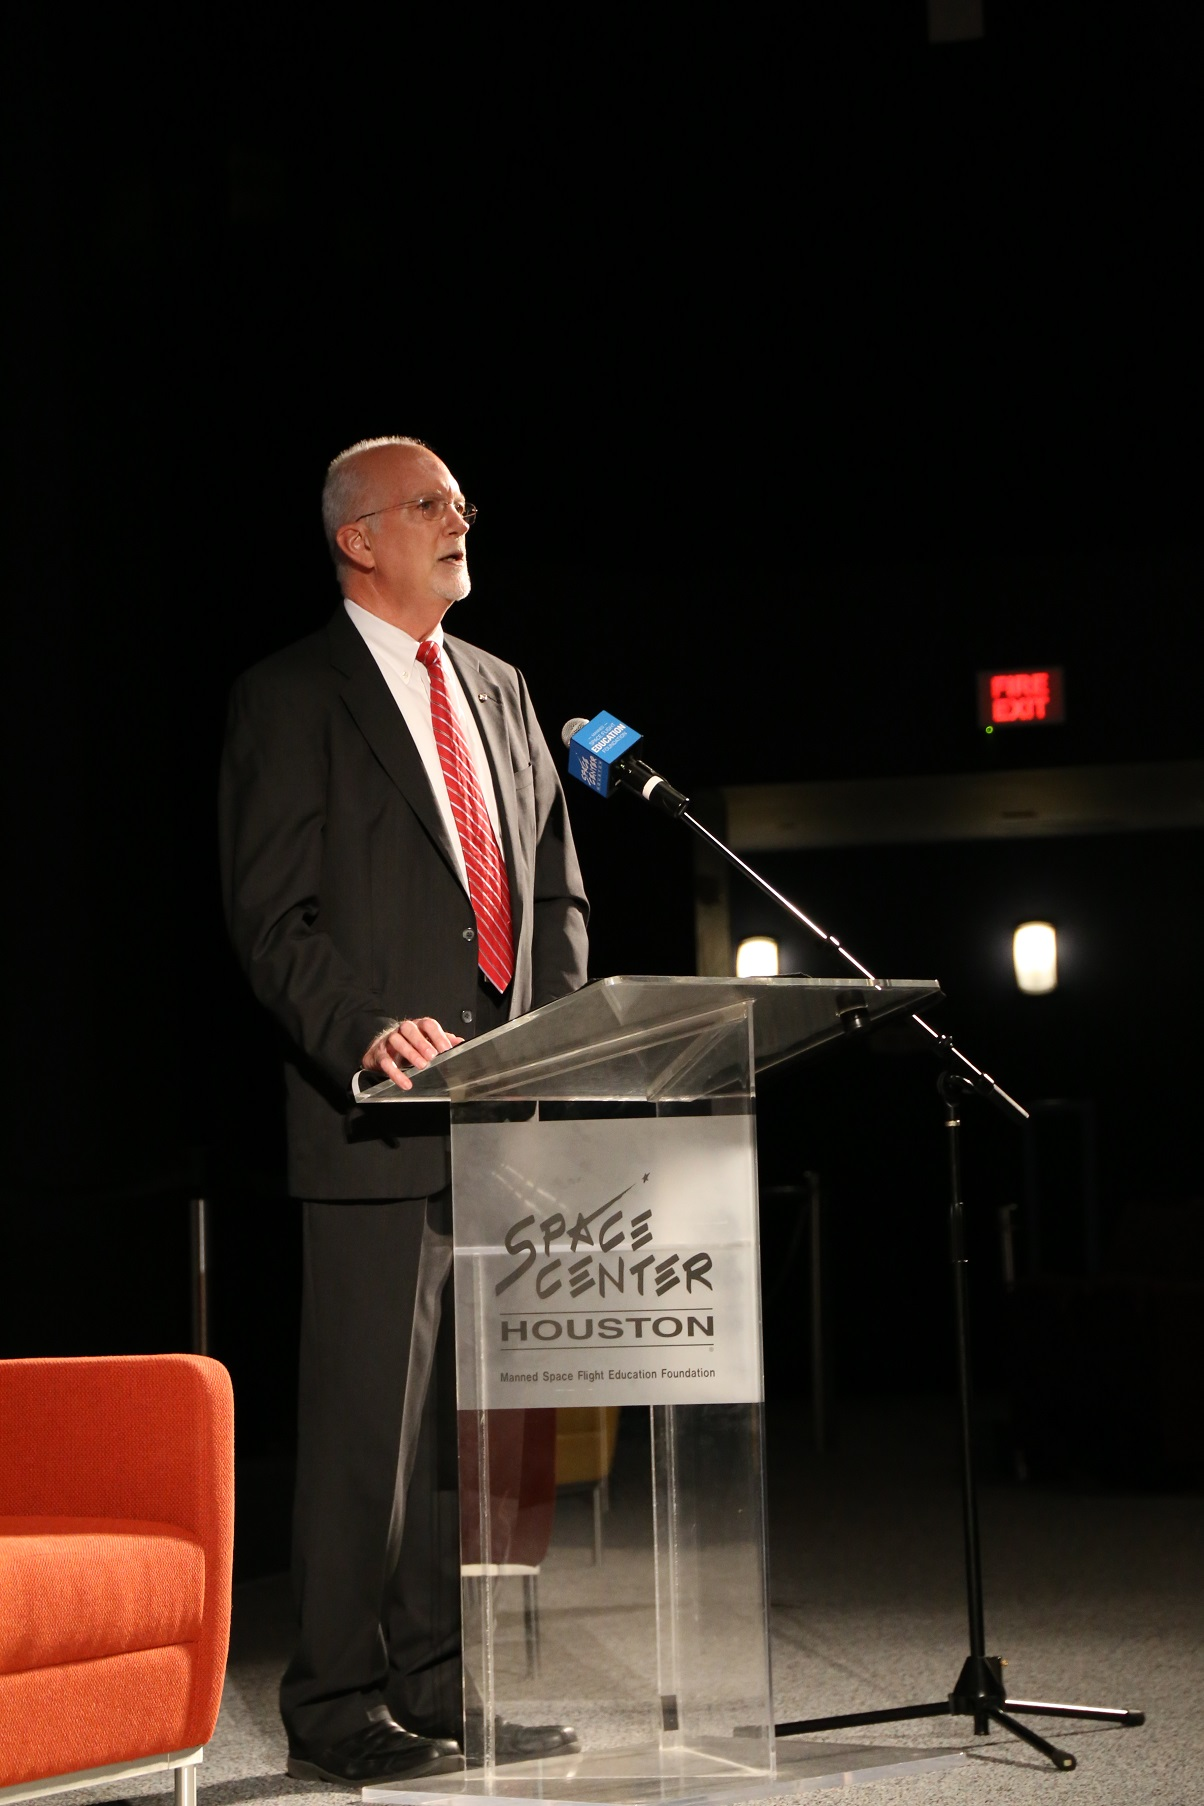 Dr. John Charles speaking at Space Center Houston